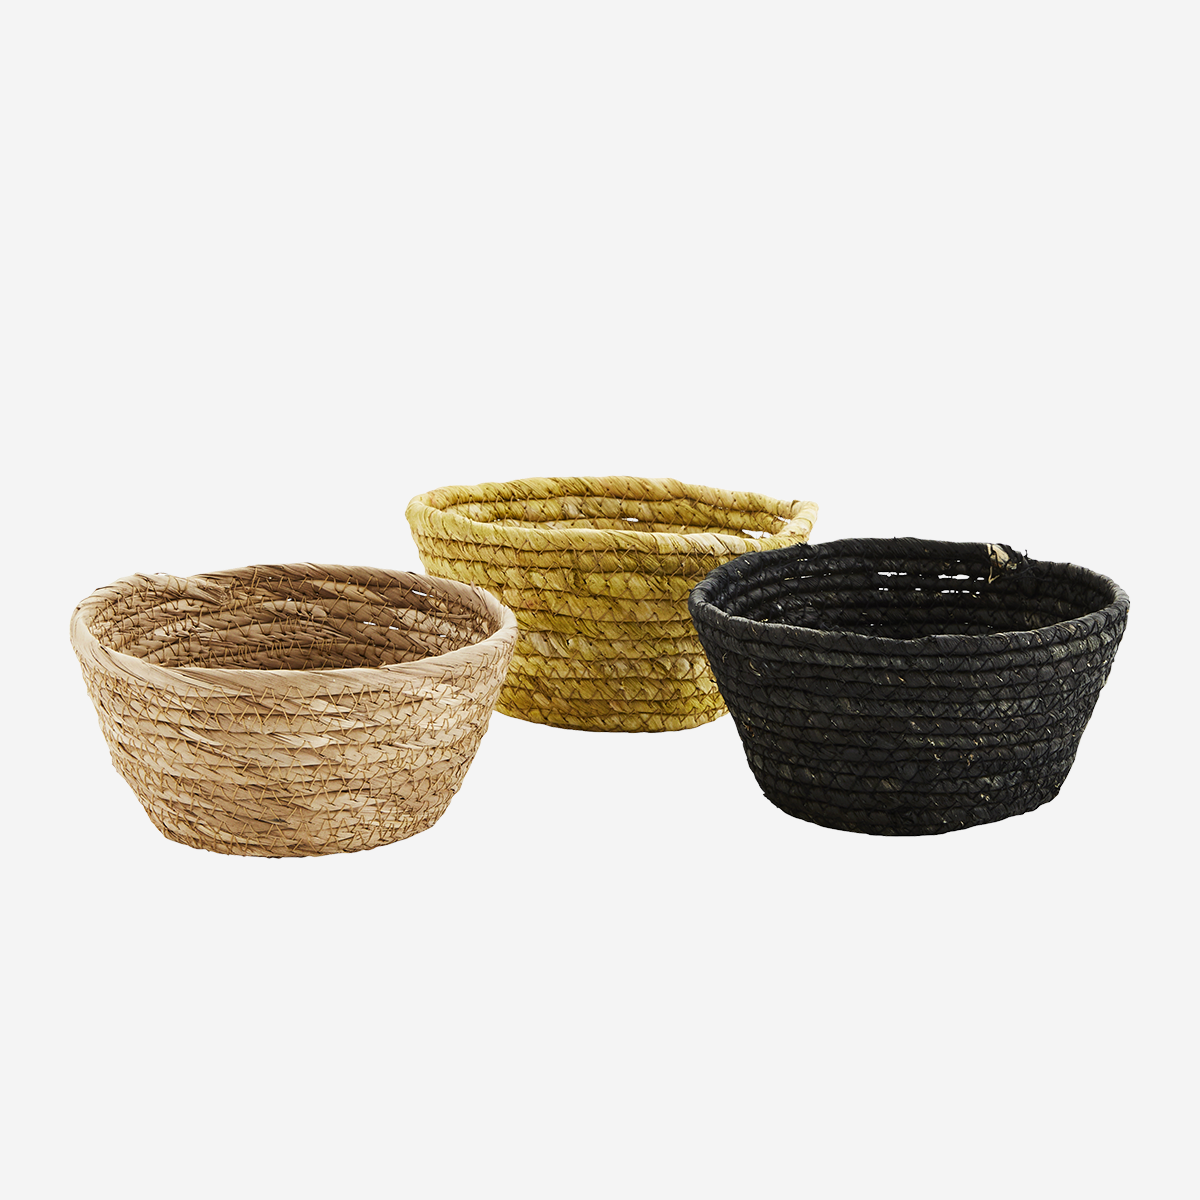 Corn baskets